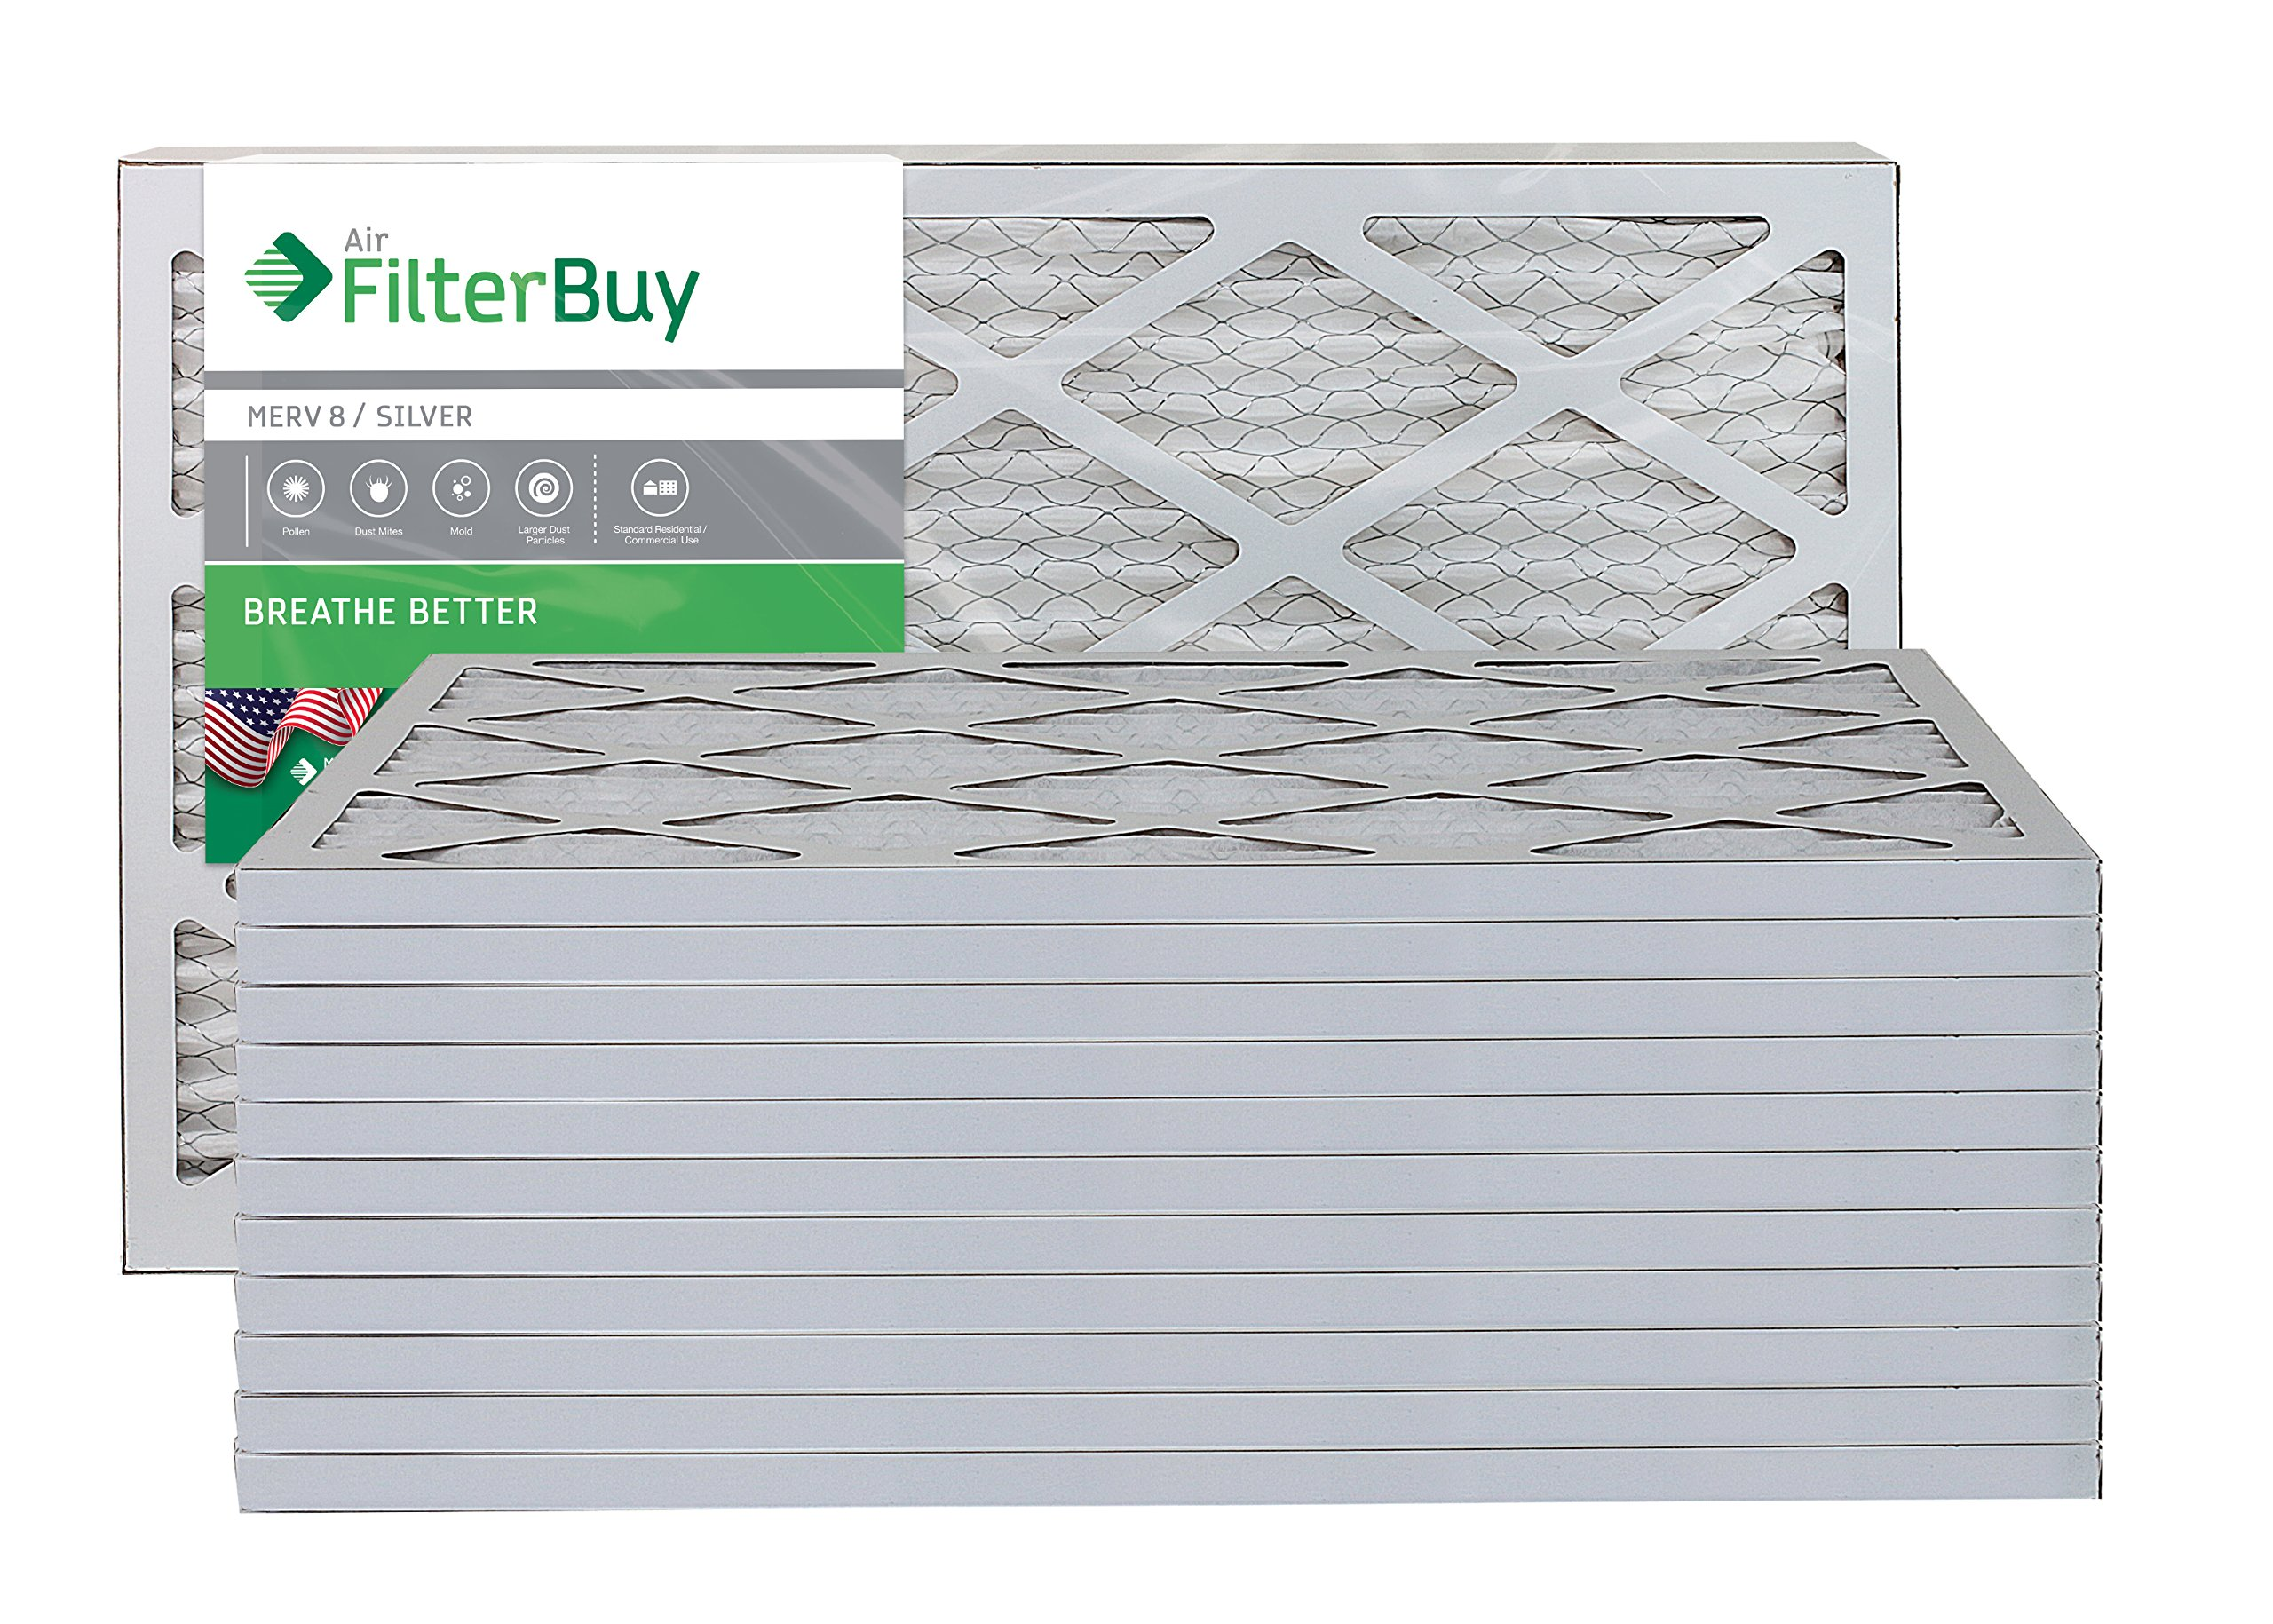 FilterBuy 10x24x1 MERV 8 Pleated AC Furnace Air Filter, (Pack of 12 Filters), 10x24x1 – Silver